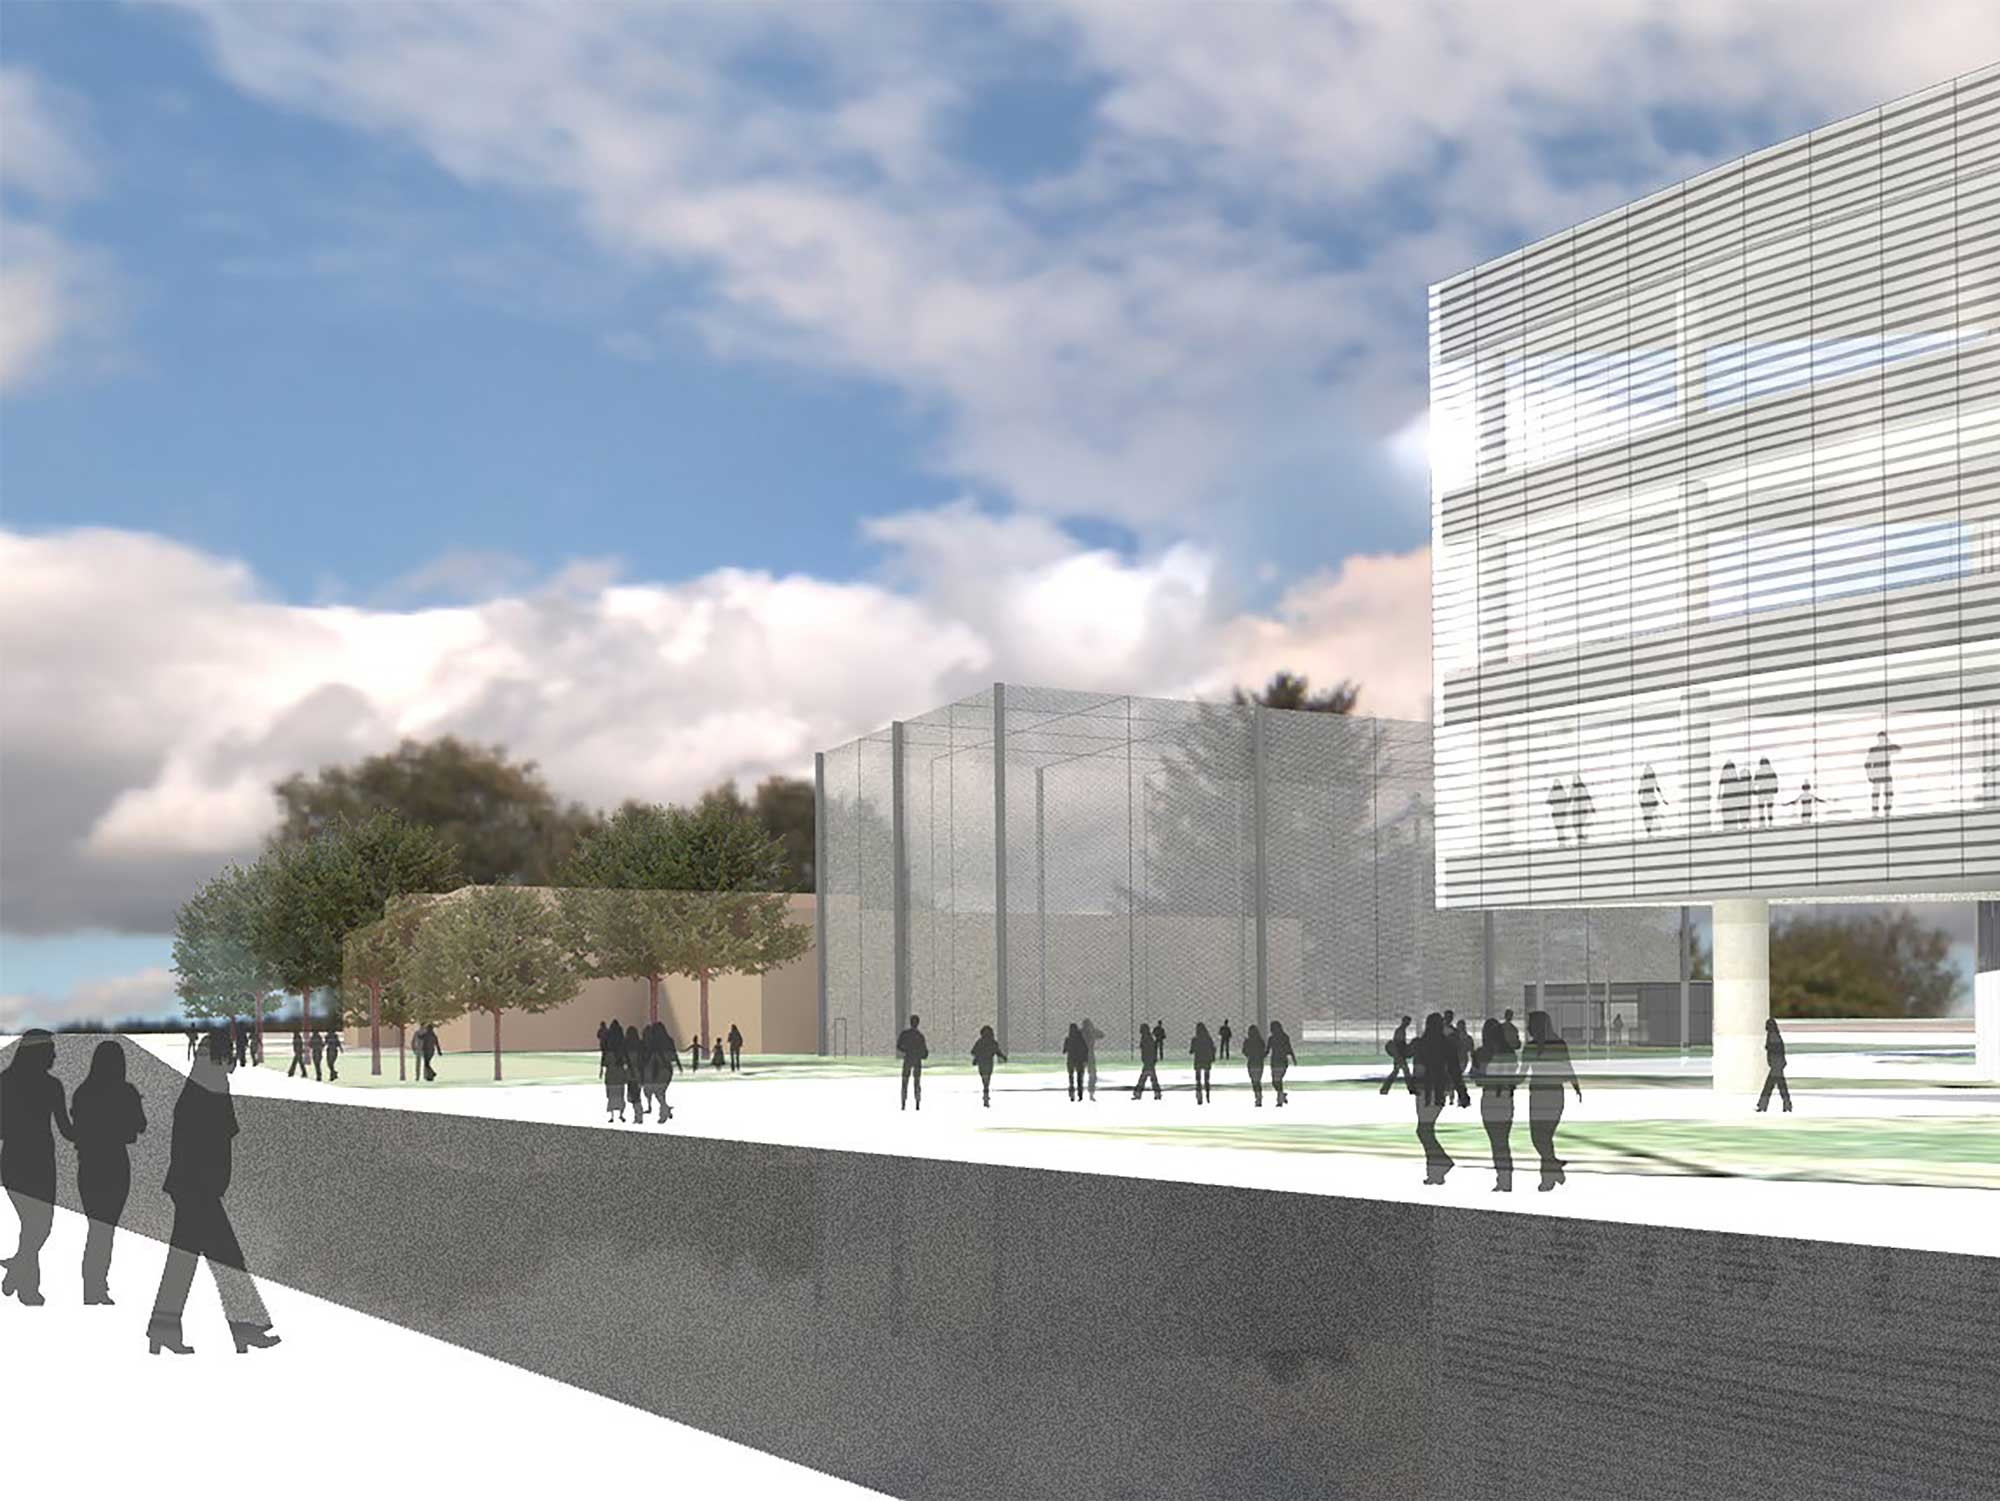 A rendering of the westward-looking view of the M-Air outdoor, netted facility for testing autonomous aerial vehicles. It will be situated between the planned Ford Motor Company Robotics Building and the existing Space Research Building on Hayward Street on the University of Michigan's North Campus. Image credit: Architect and engineering firm Harley Ellis Devereaux